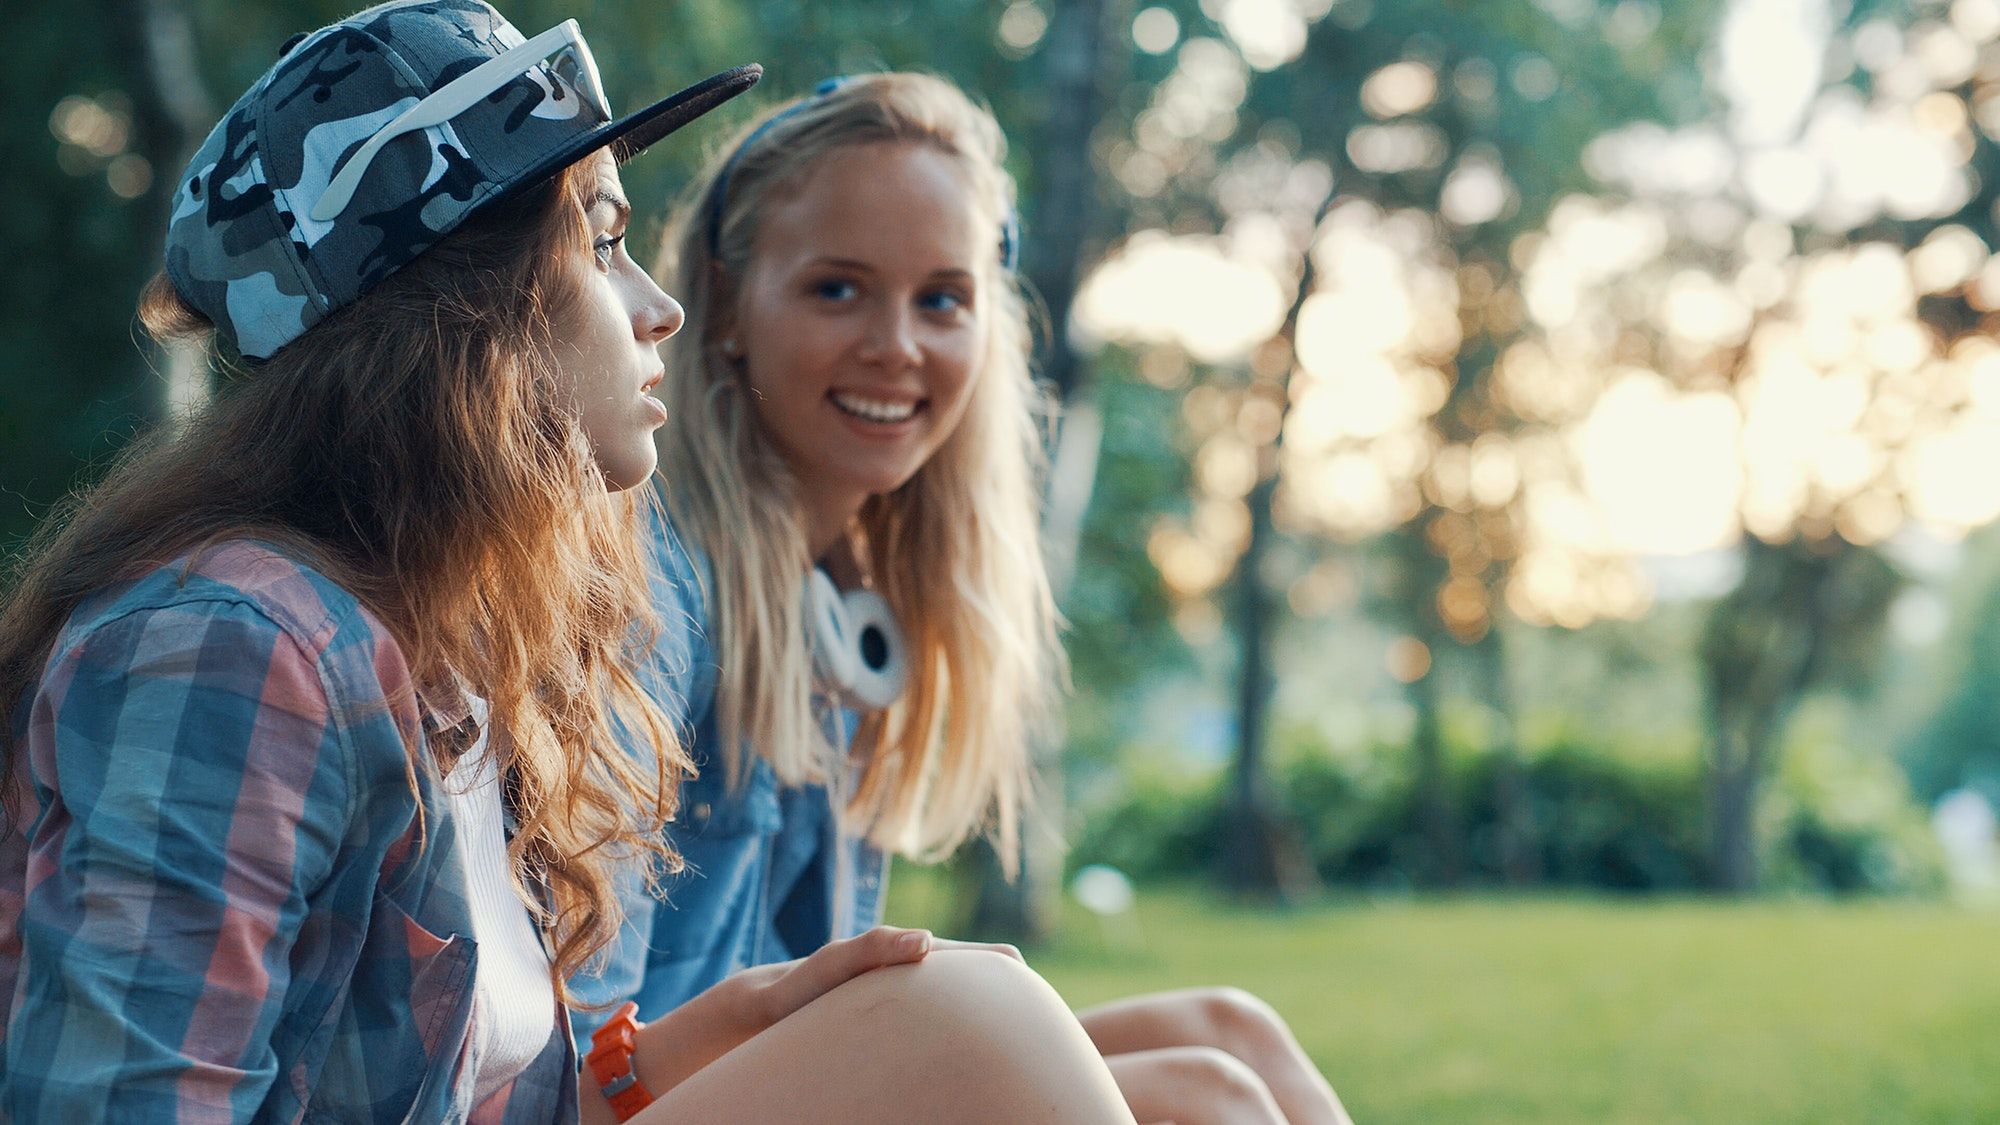 Young teen smiles at her friend as they sit in a grassy field. She is feeling more open with others after going to group therapy for teen girls in west bloomfield, mi. Therapyology offers adolescent therapy in west bloomfield, mi, therapy for girls in west bloomfield, mi, and more. contact us to start therapy for teens in west bloomfield, mi.